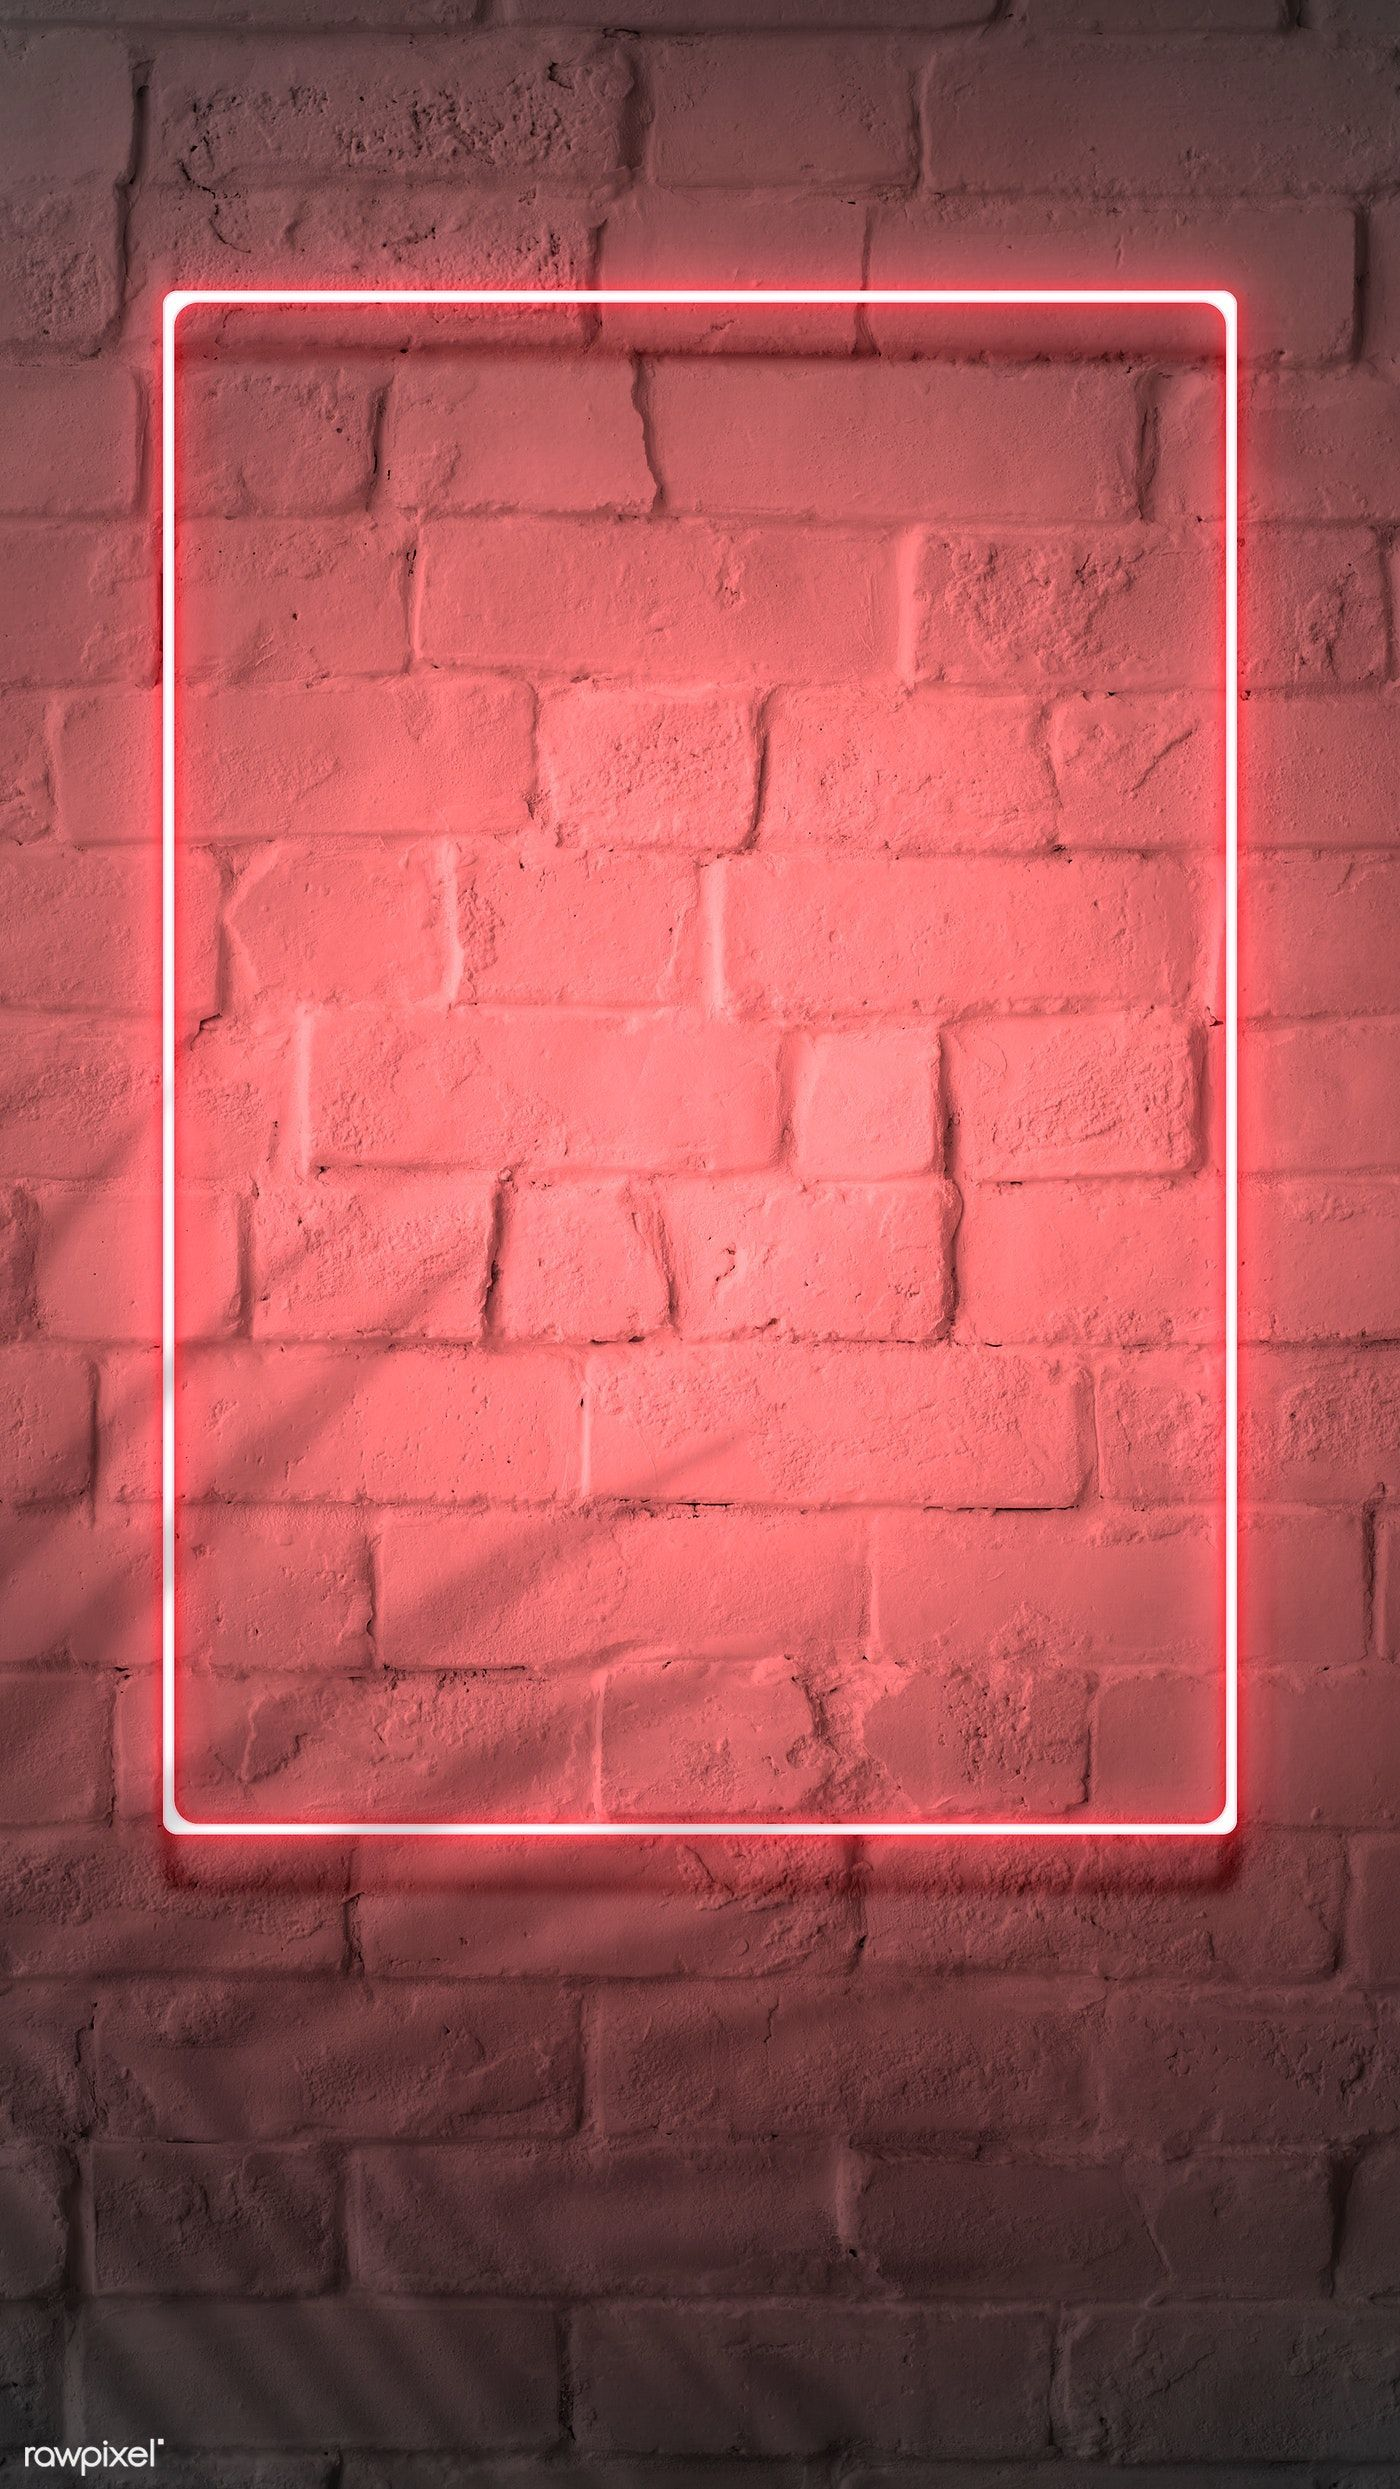 Download premium psd of Neon red frame on a brick wall 894328